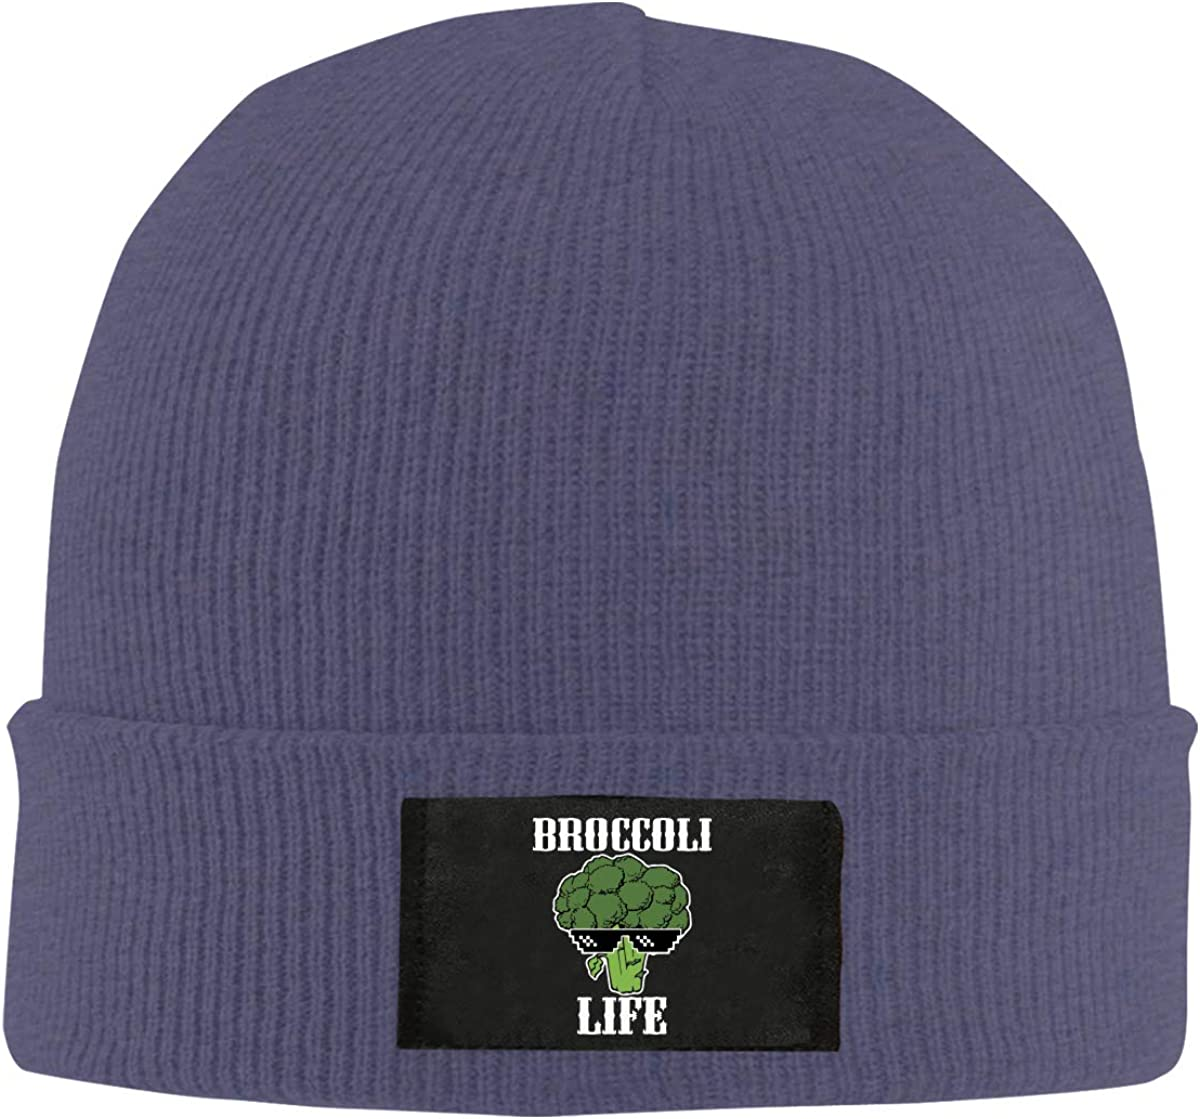 Broccoli Life Unisex Knitted Hat Comfortable Skull Cap